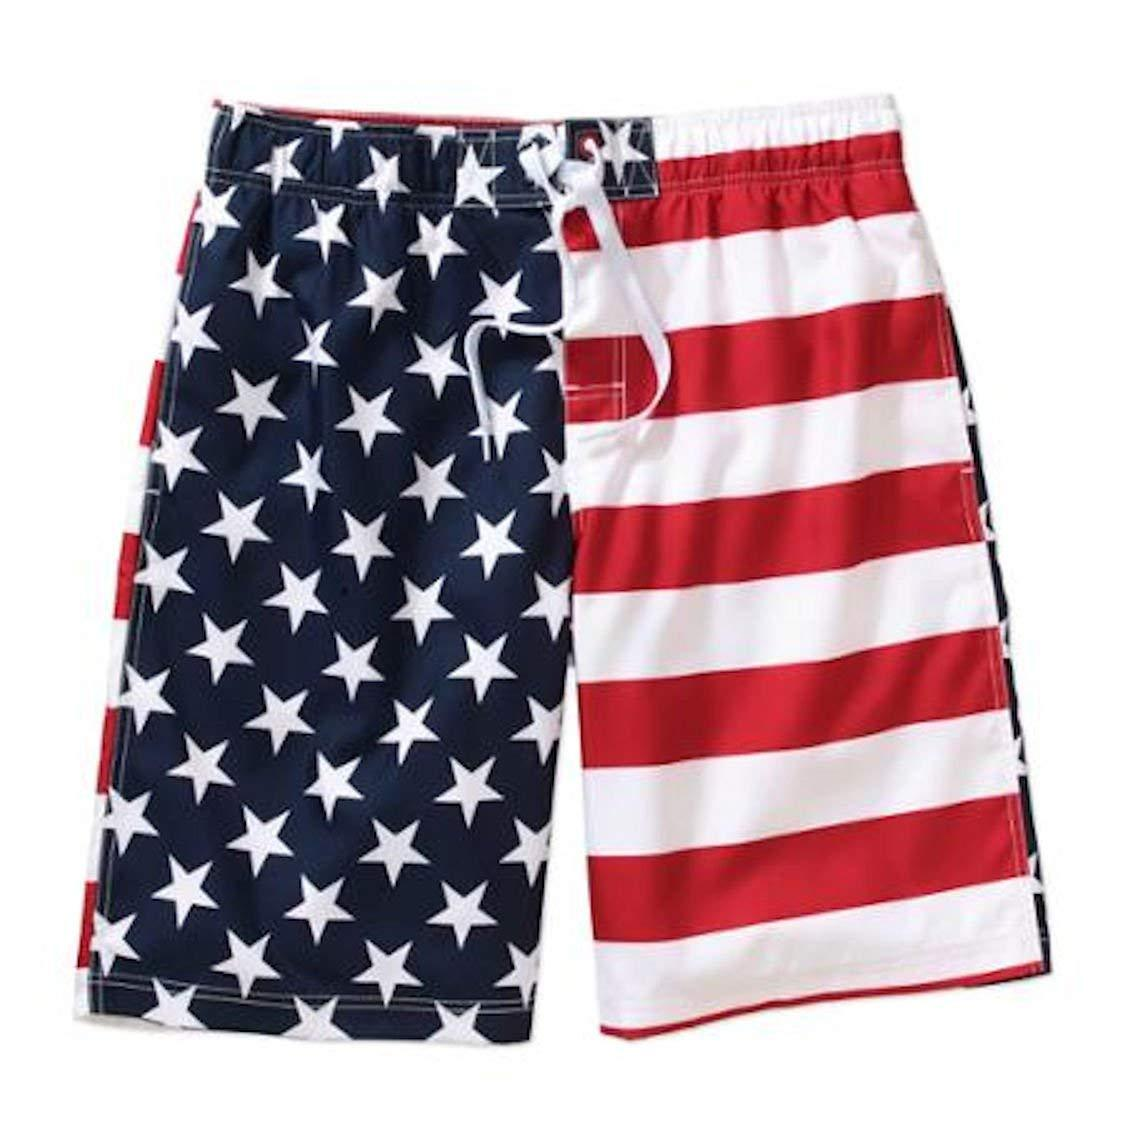 UZZI Men's Faded Patriotic Glory USA American Flag Swim Trunks